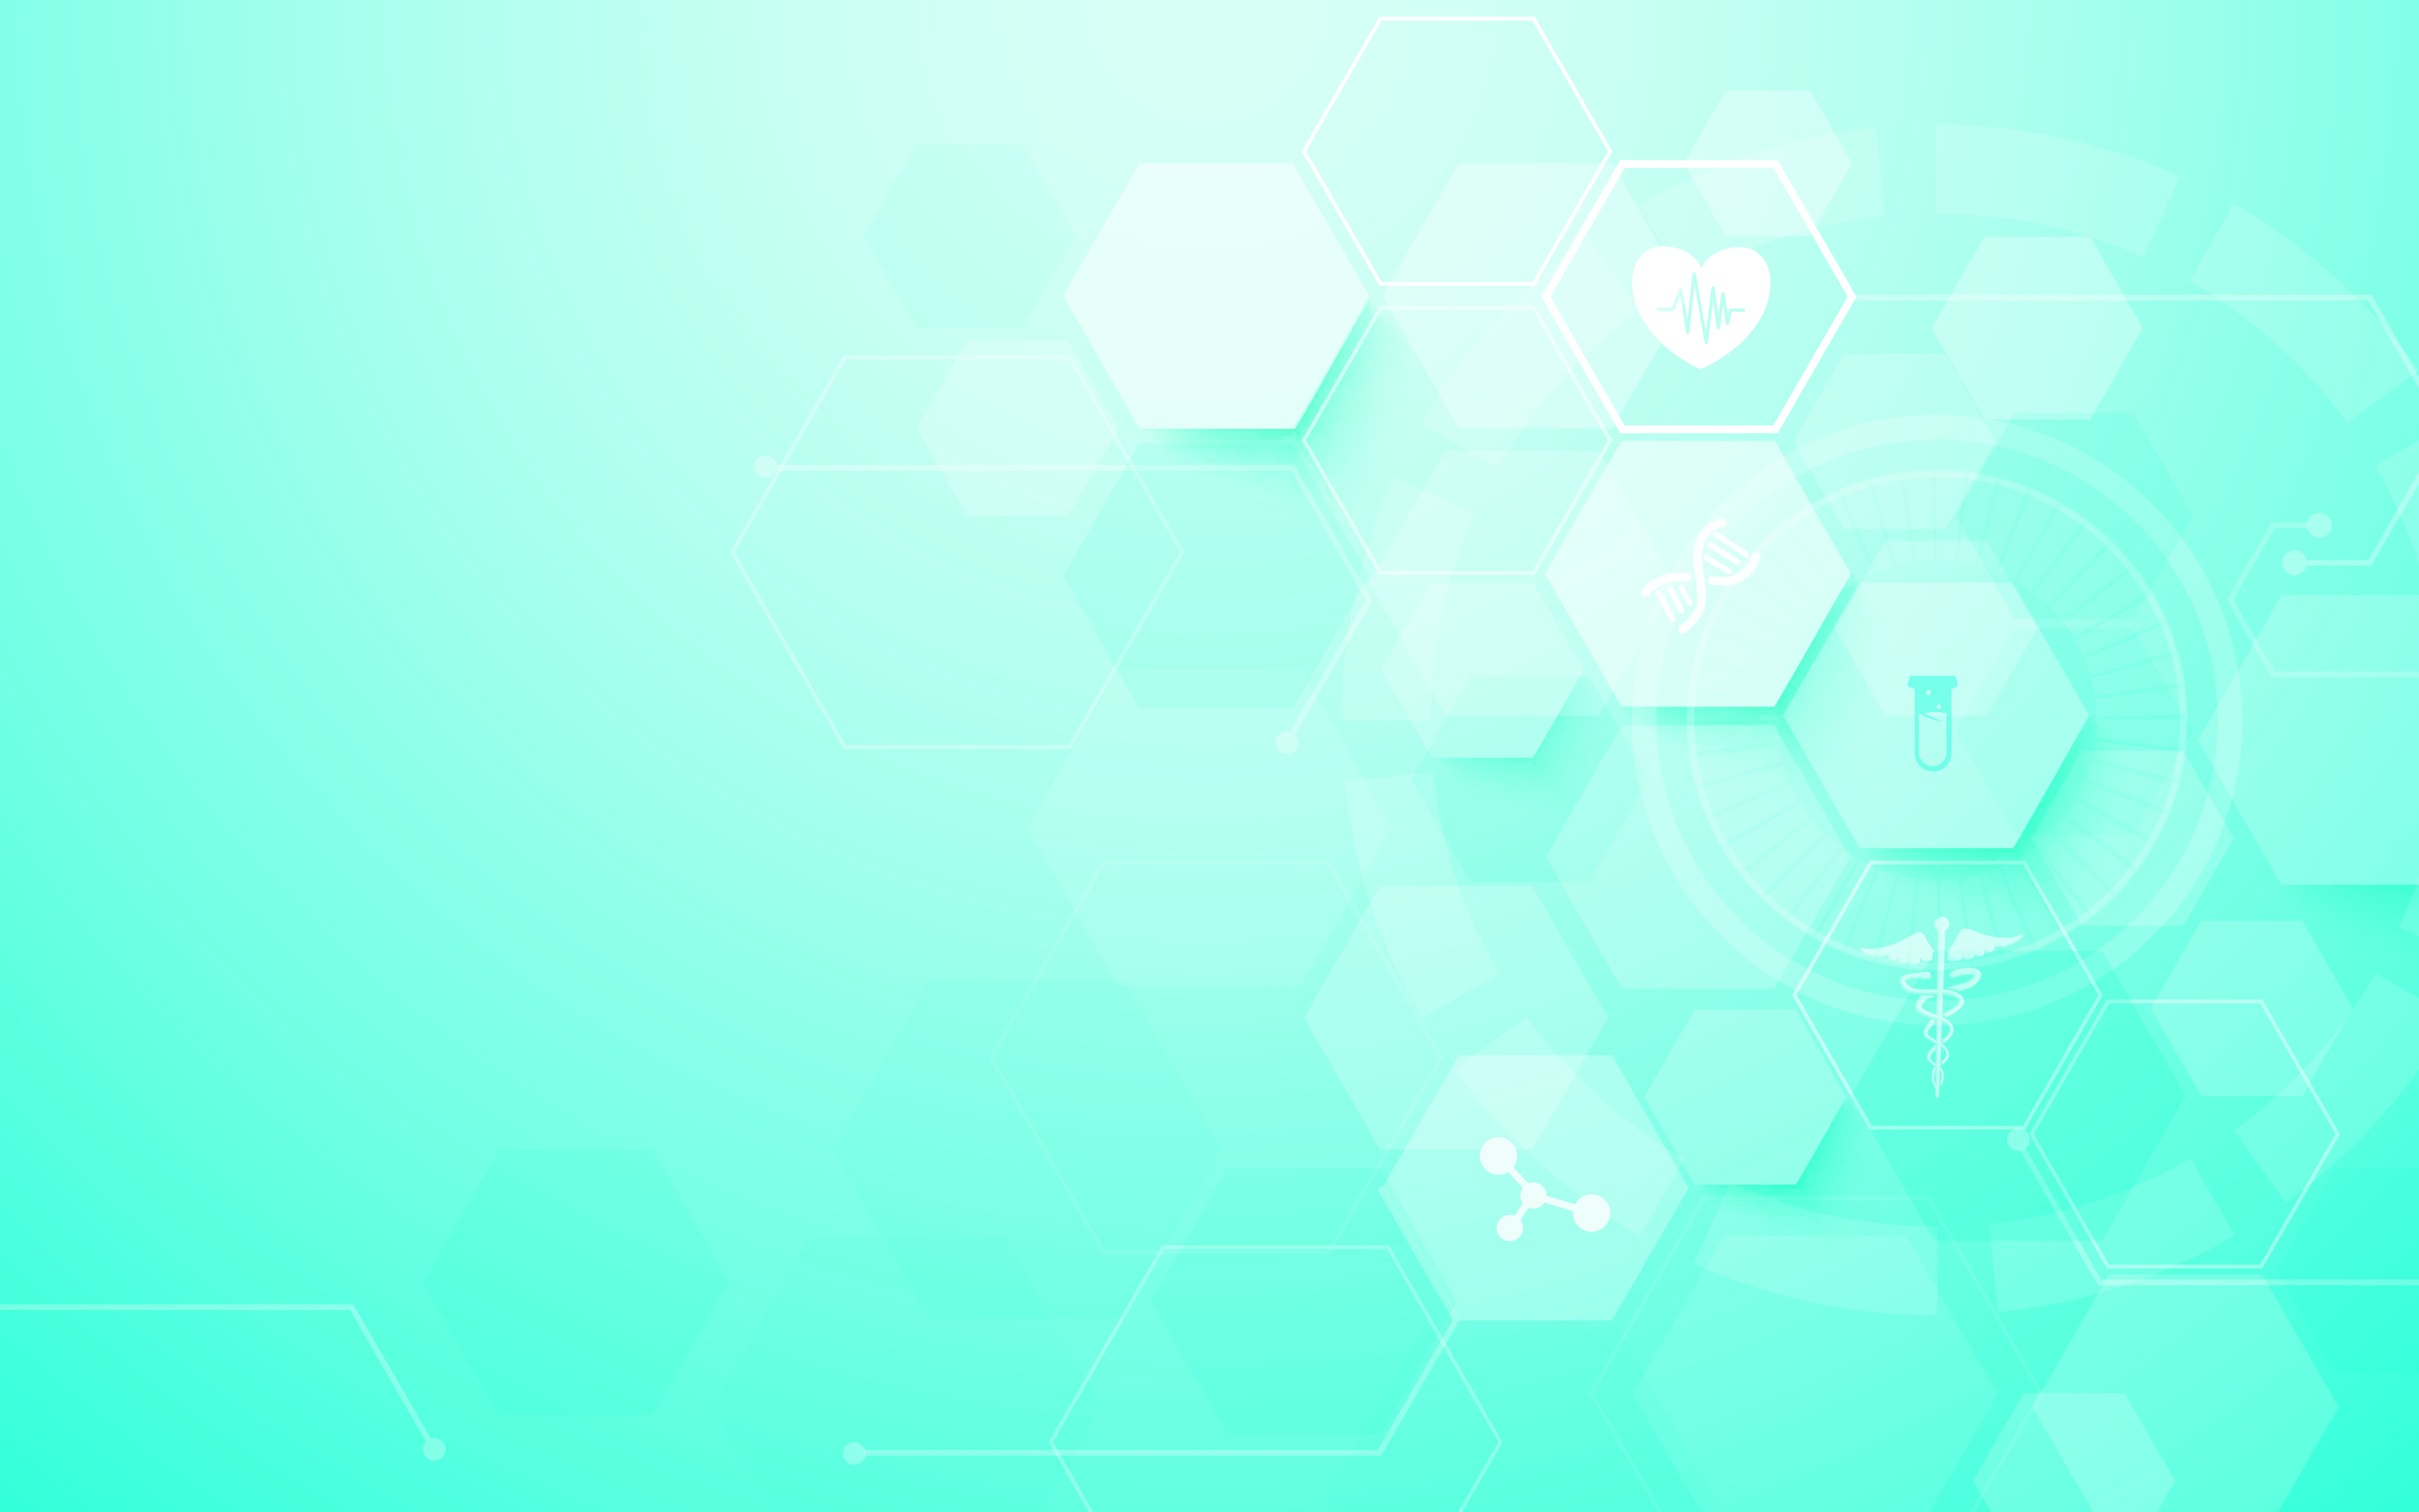 Abstract geometric hexagons shape medicine and science concept